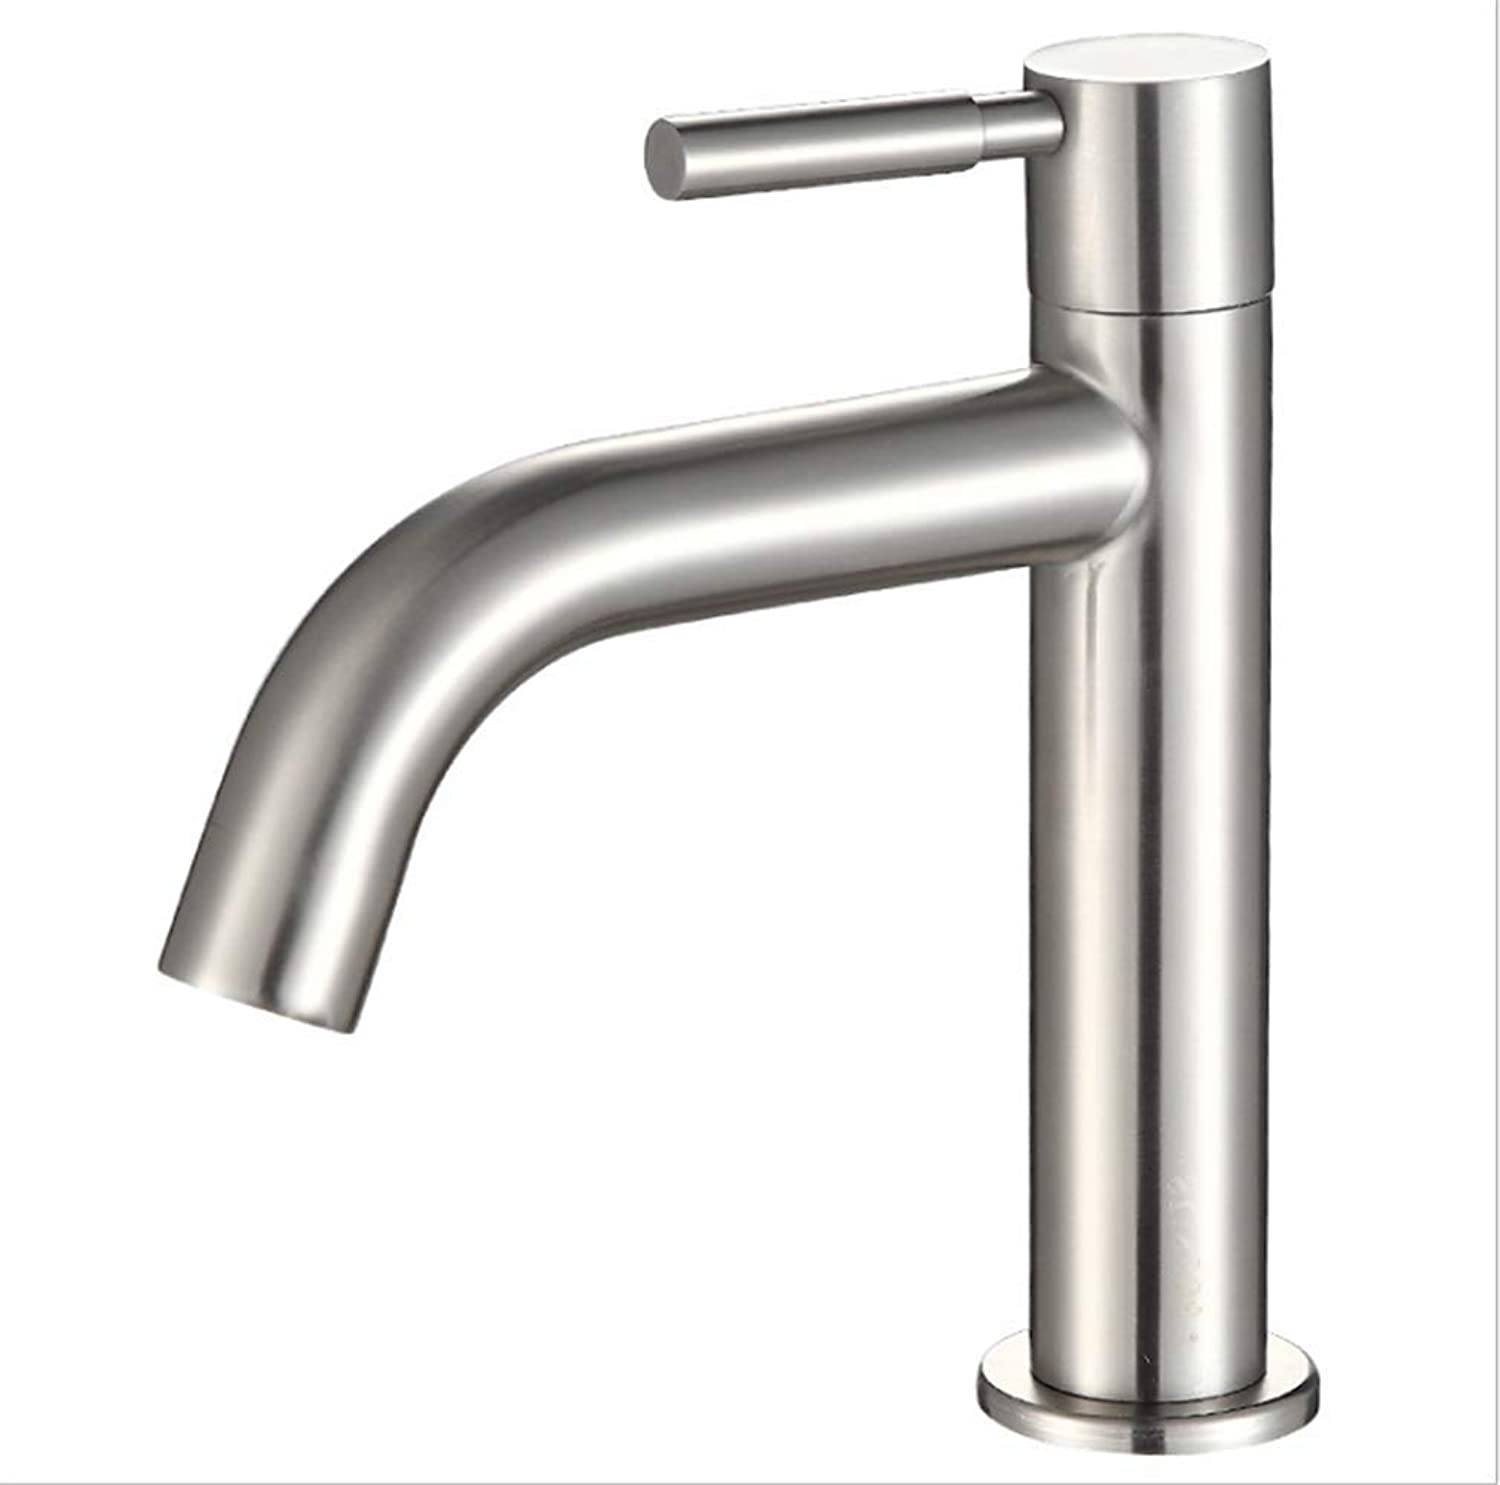 Kitchen Taps Faucet Modern Kitchen Sink Taps Stainless Steel304 Stainless Steel Single Cold Basin Faucet Single Hole